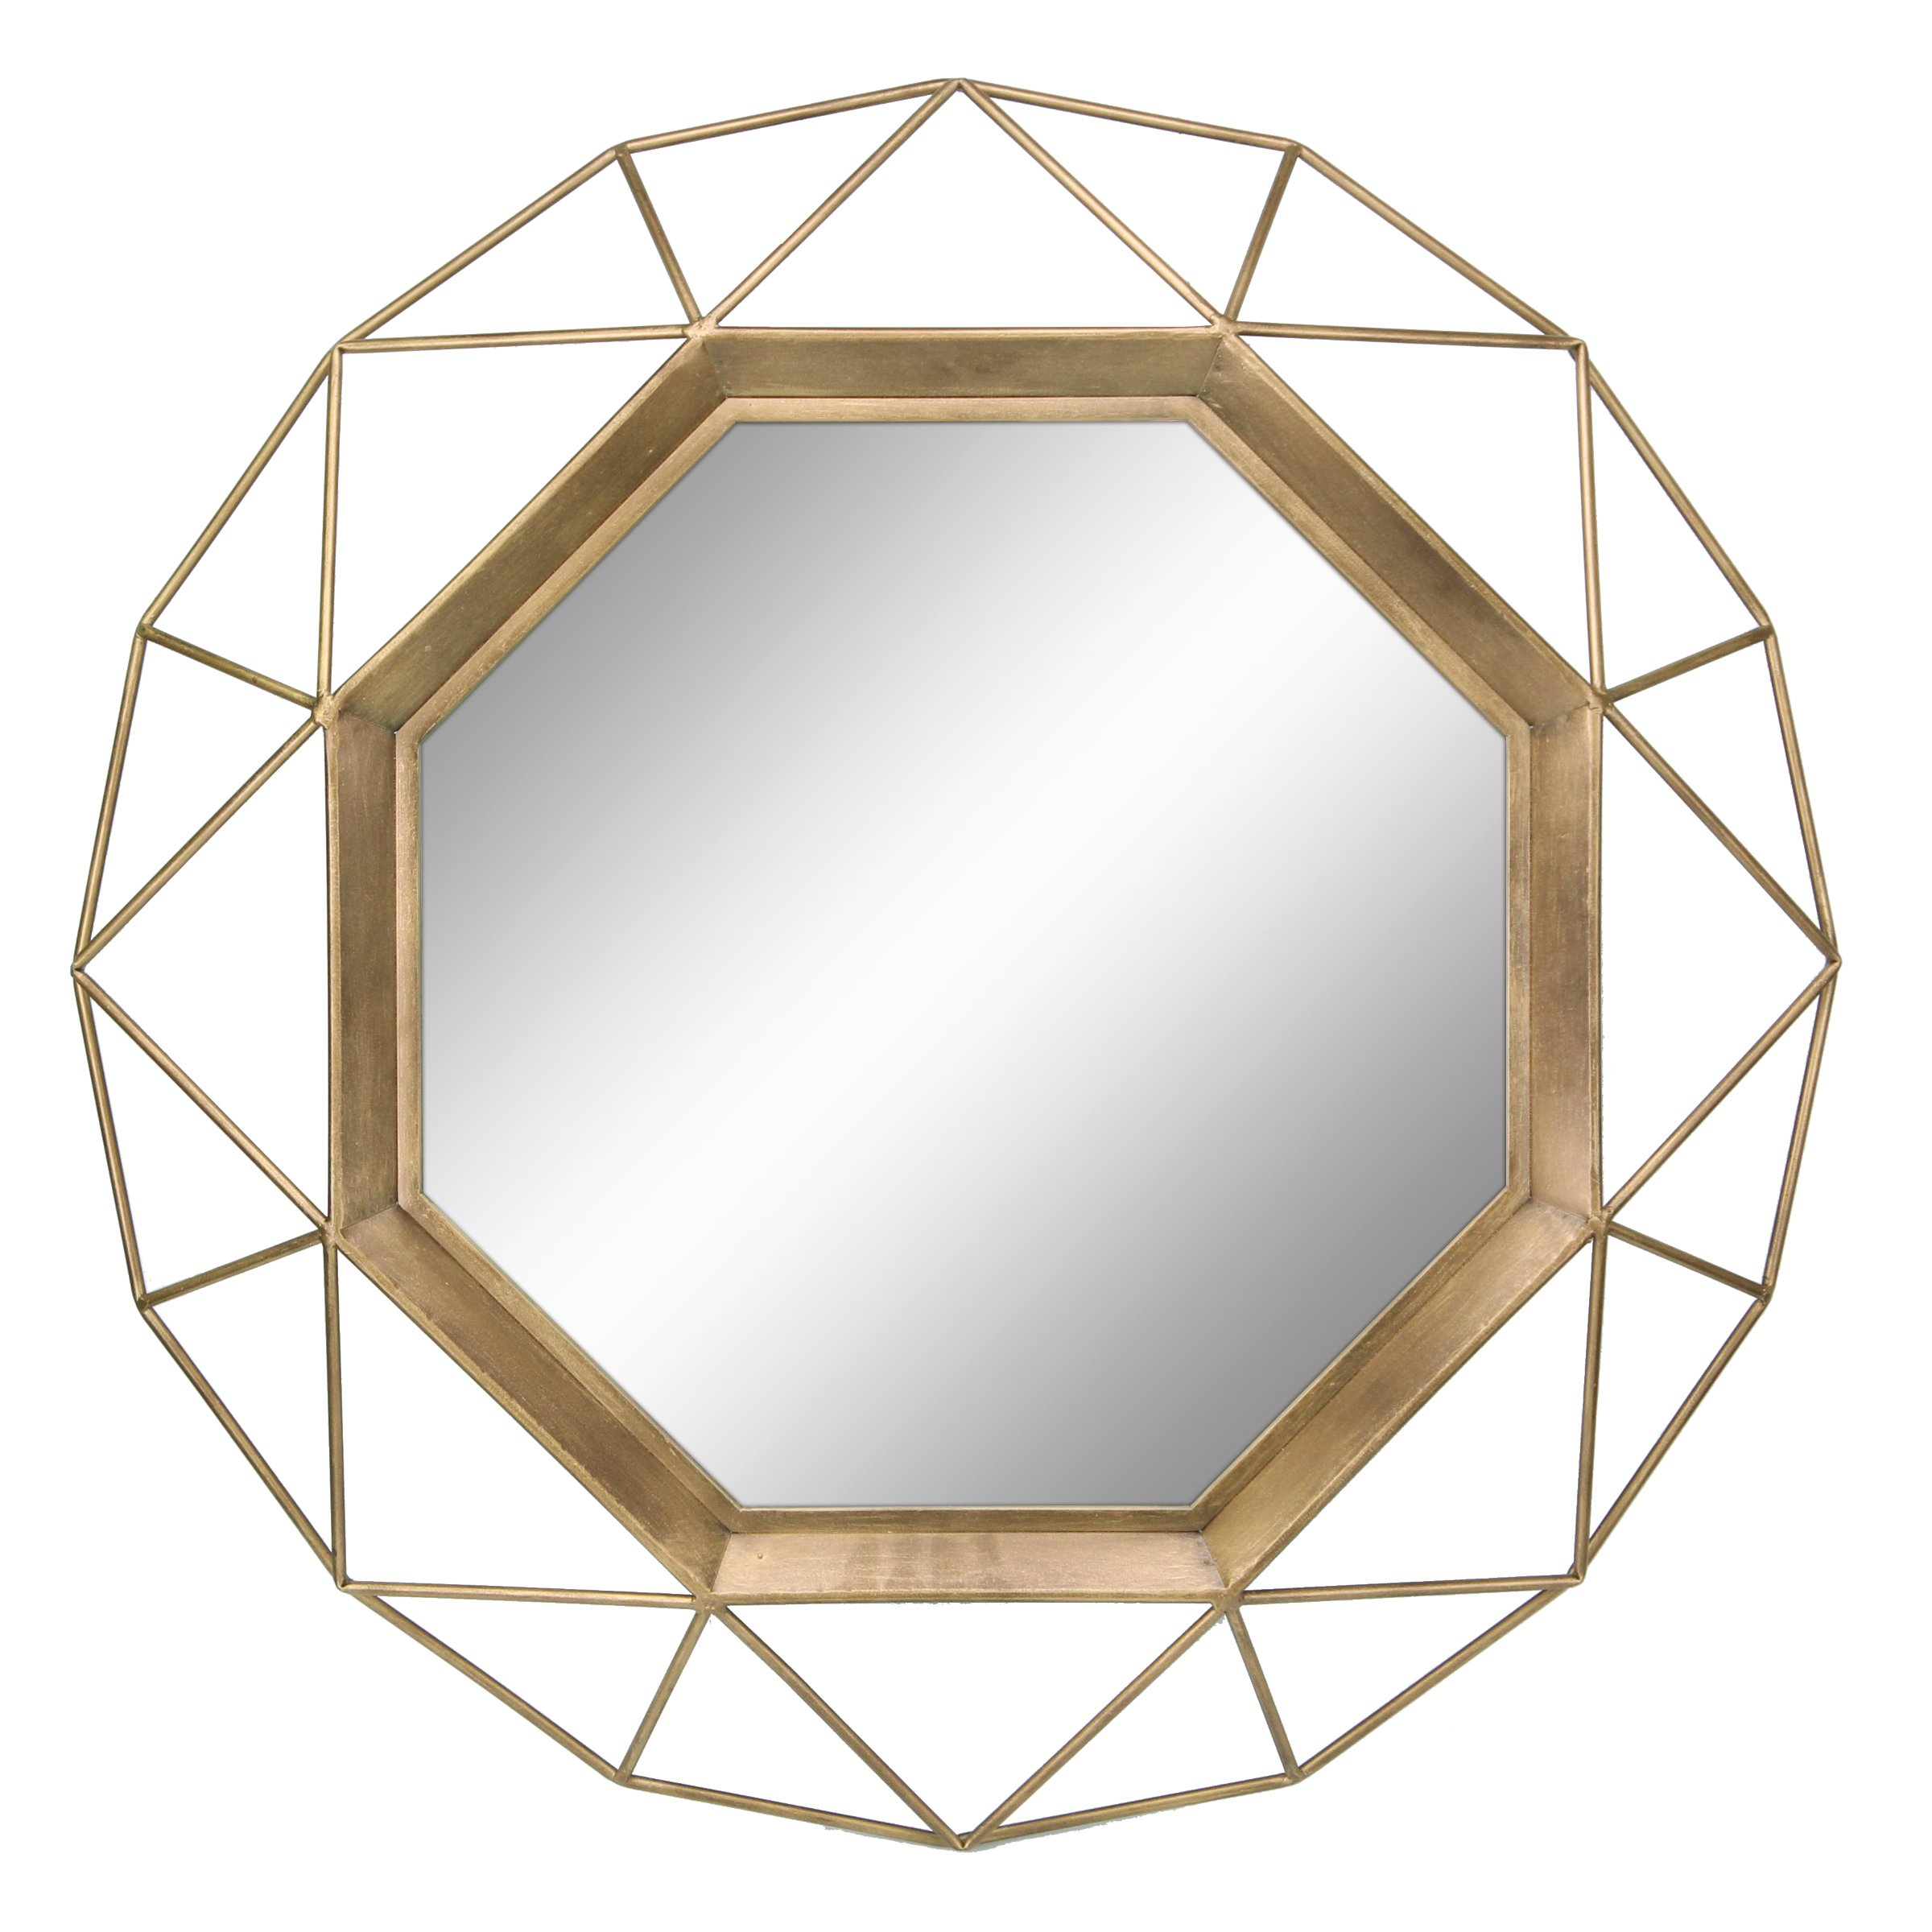 Stonebriar Decorative Antique Gold 30'' Geometric Metal Frame Hanging Wall Mirror with Mounting Brackets, Modern Decor for the Living Room, Bathroom, Bedroom, and Entryway